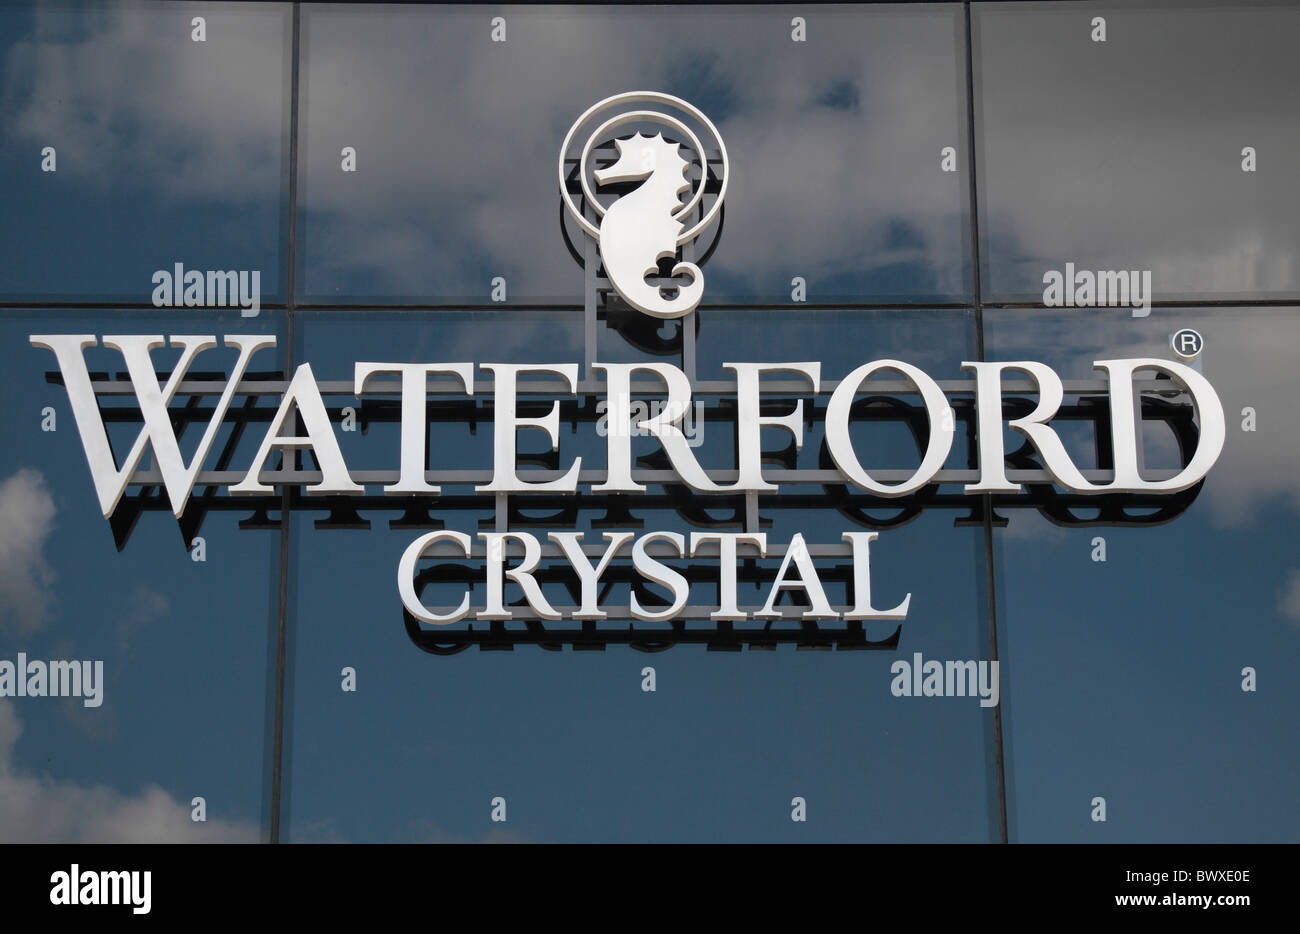 The Waterford Crystal logo on the new House of Waterford Crystal (Jun 2010), Waterford City, Co. Waterford, Ireland - Stock Image